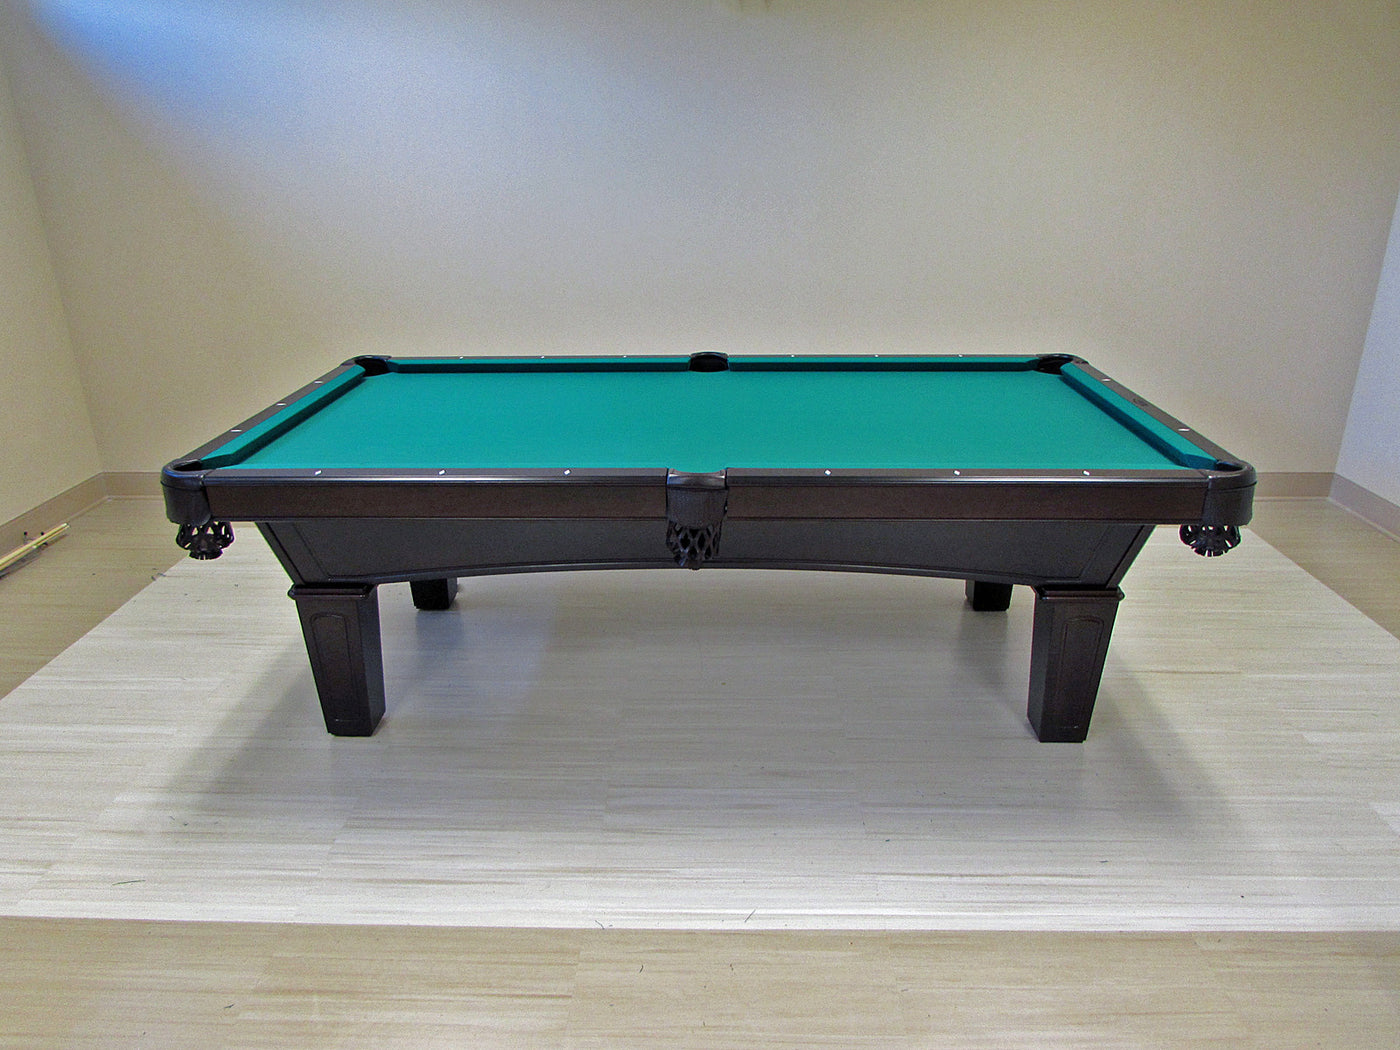 Olhausen Reno Pool Table Robbies Billiards - Olhausen 30th anniversary pool table price